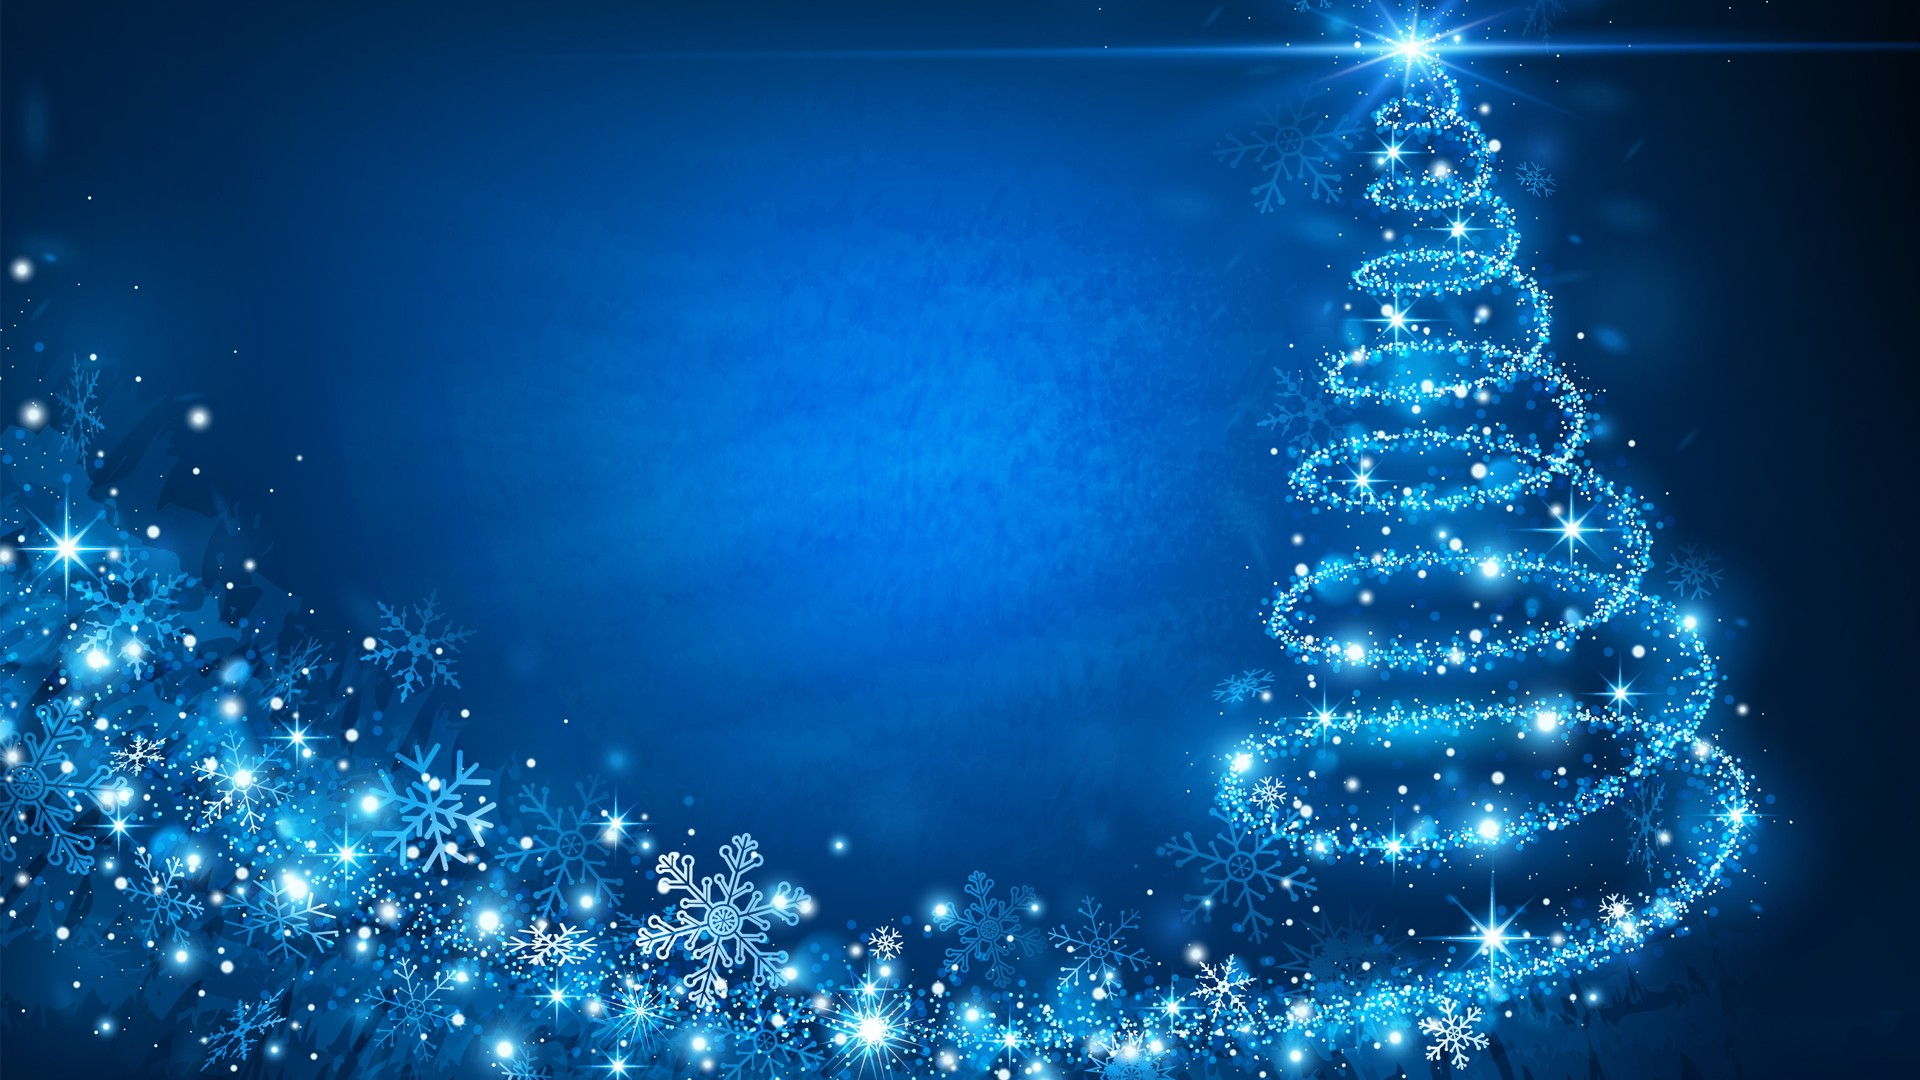 Free Download Blue Christmas Wallpaper Hd 1920x1080 For Your Desktop Mobile Tablet Explore 64 Free Wallpaper For Christmas Free 3d Christmas Wallpaper Free Animated Christmas Wallpapers Christmas Desktop Free Holiday Wallpaper